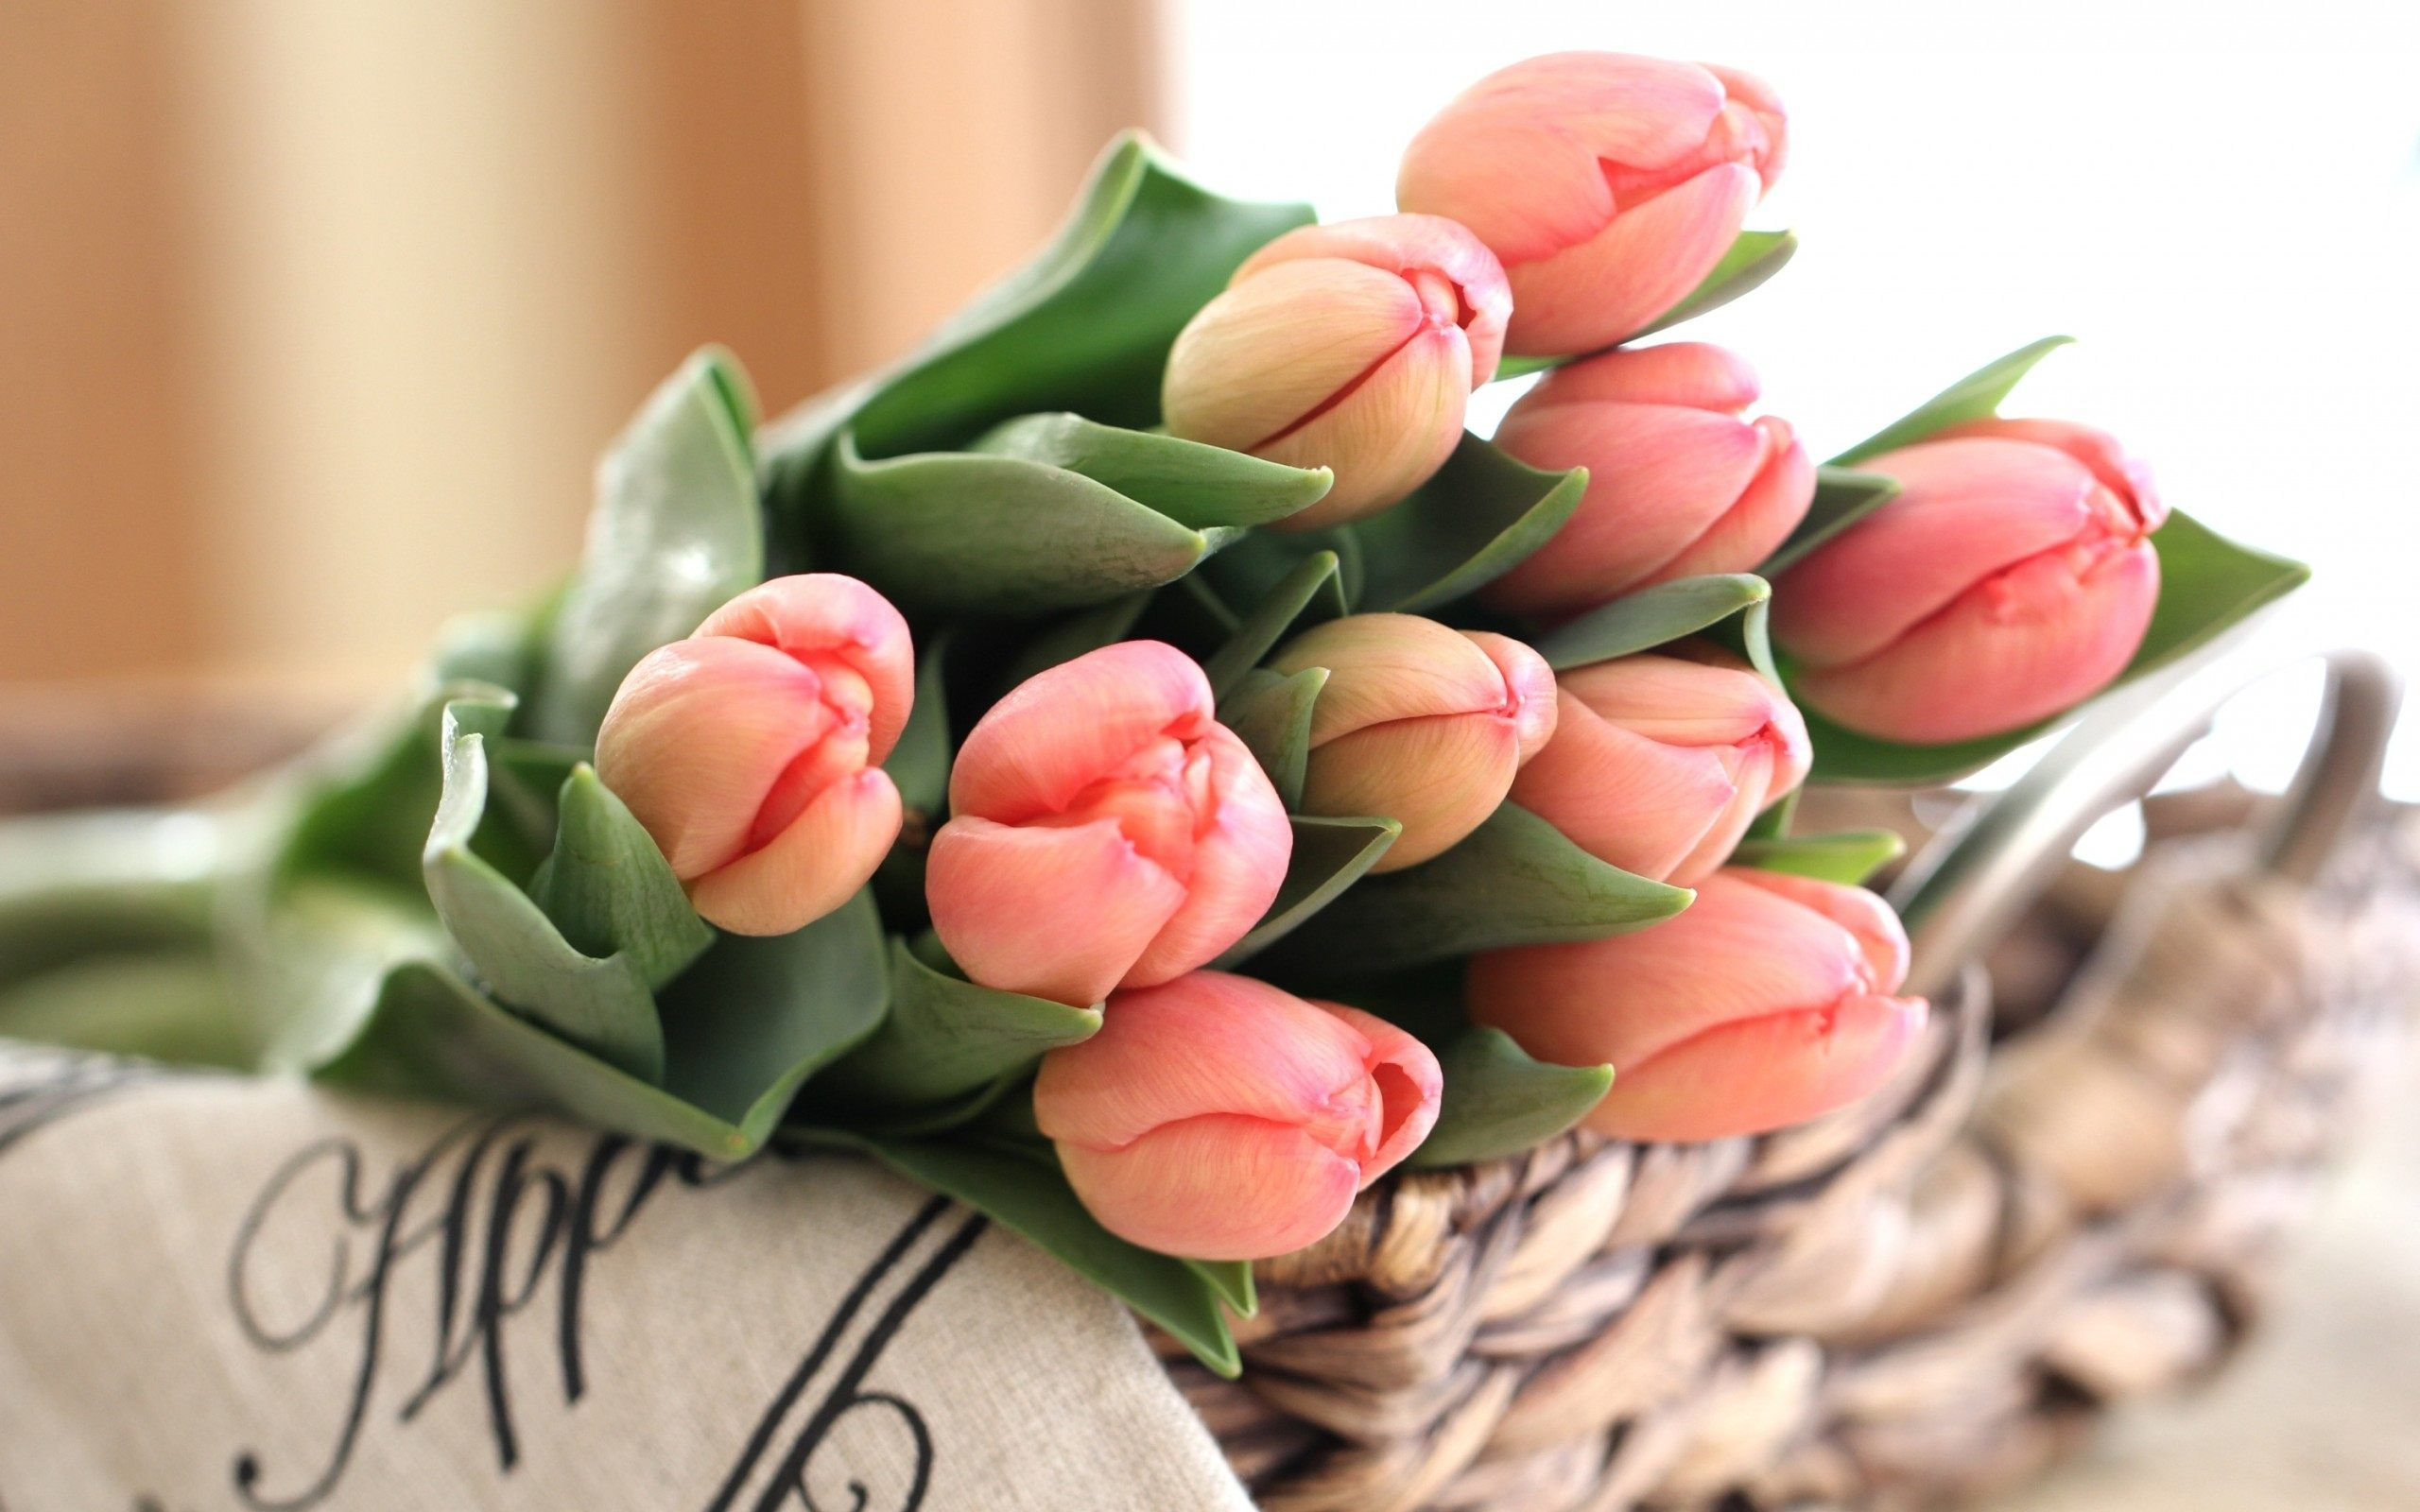 Tulip Bouquet Of Pink Tulips Wallpaper For Desktop Mobile High